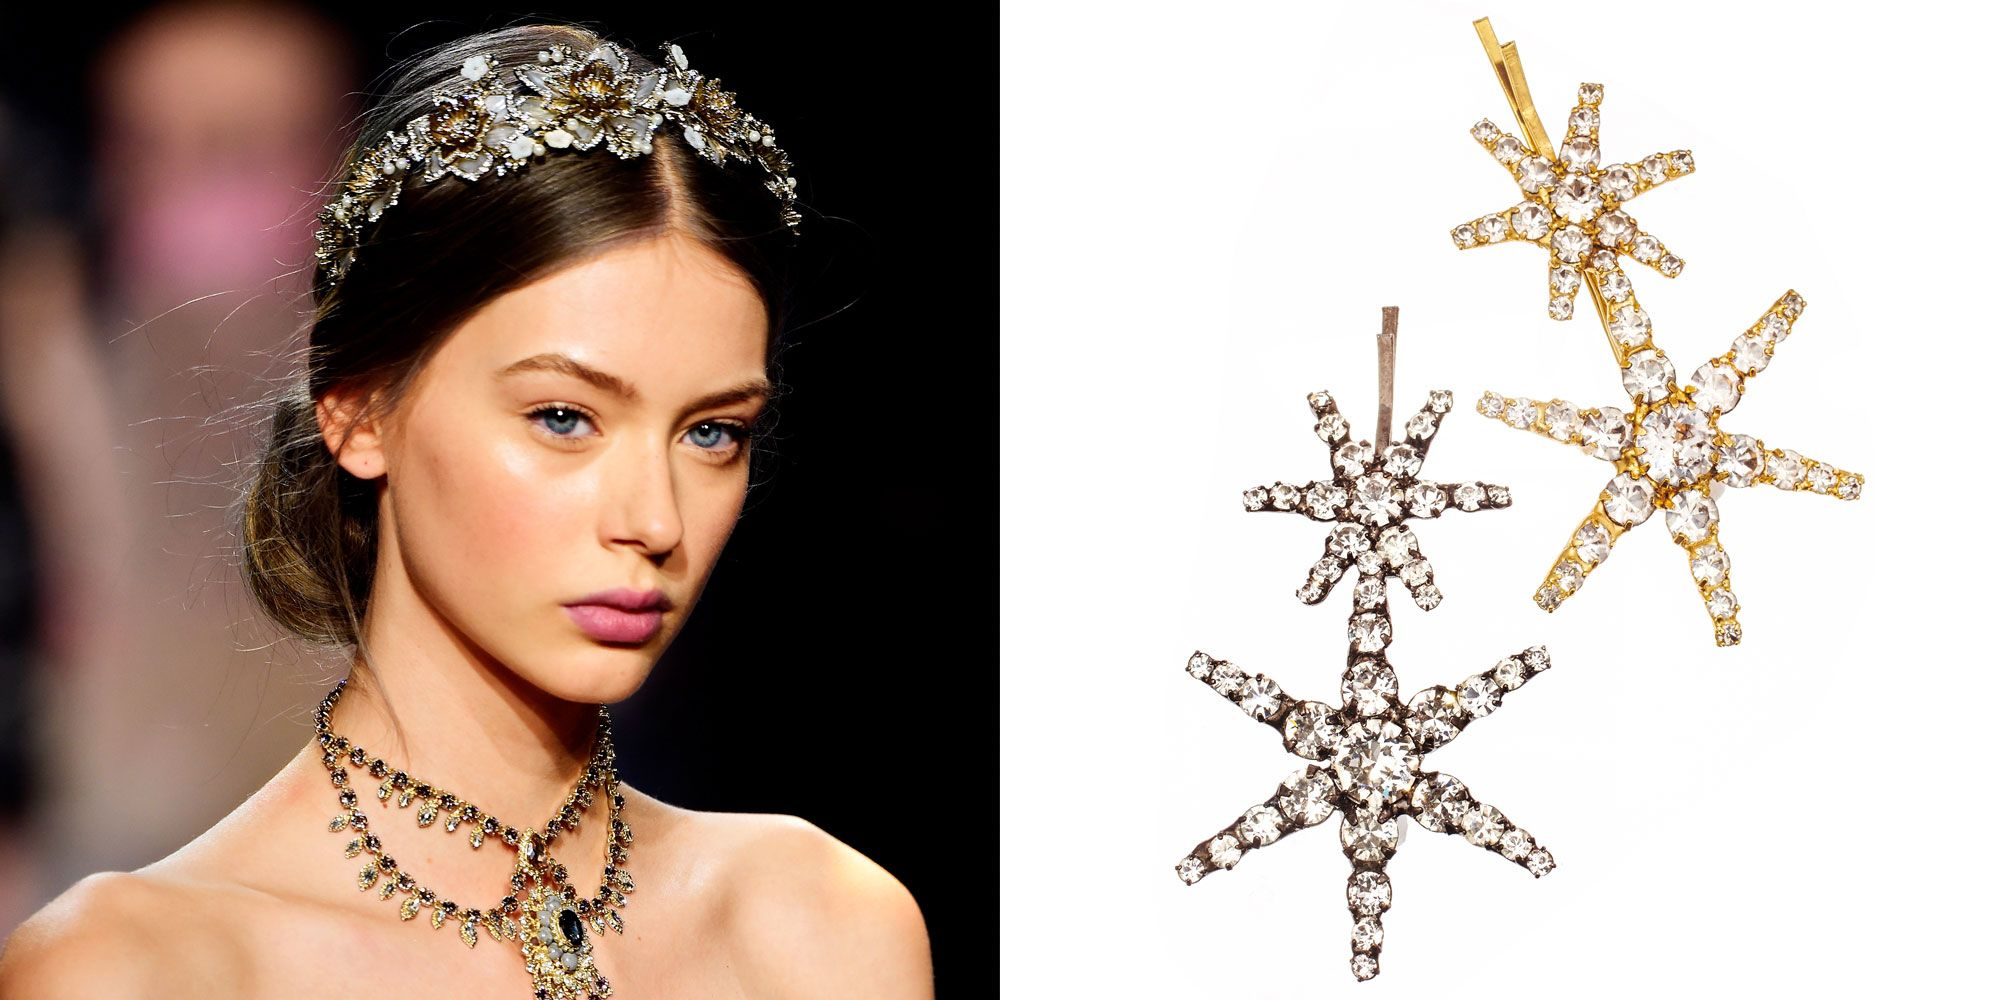 "<p>Consider these sparkly pins an accessory—not the tools you're using to secure your hairstyle, advises Hawkins. They're eye-catching enough on their own, so keep your makeup simple.</p>  <p><strong data-redactor-tag=""strong"" data-verified=""redactor"">Jennifer Behr</strong> Venus bobby pins, $128 each, <a href=""http://www.jenniferbehr.com/double-star-bobby-pin.html"" target=""_blank"" data-tracking-id=""recirc-text-link"">jenniferbehr.com</a>. </p>"